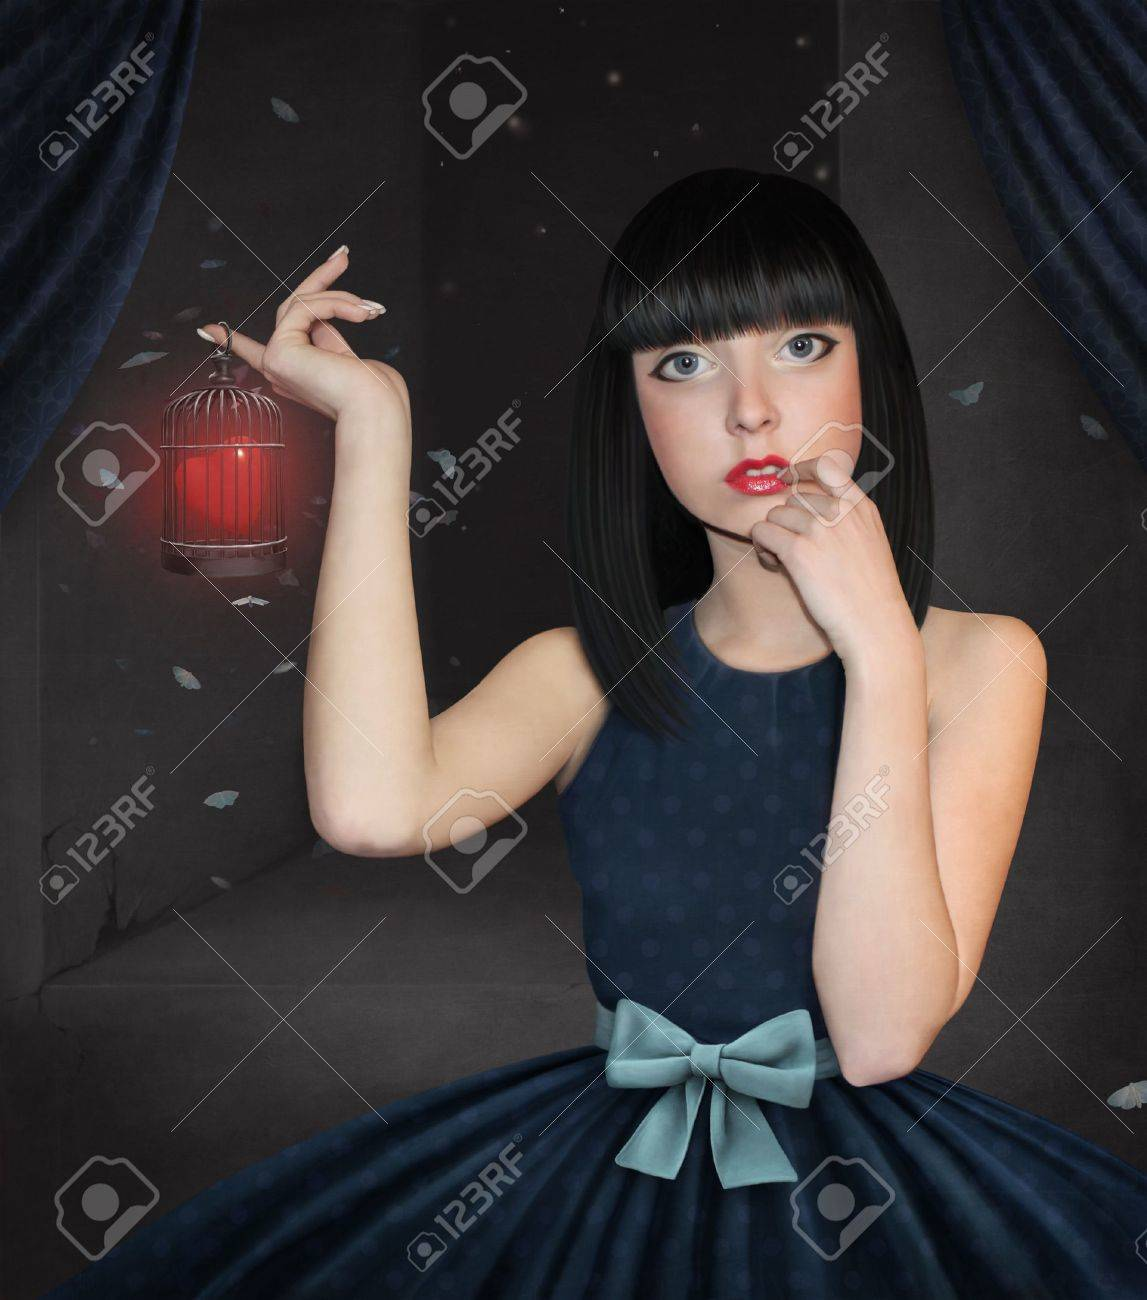 Beautiful girl  with a cage and heart. Stock Photo - 10709190